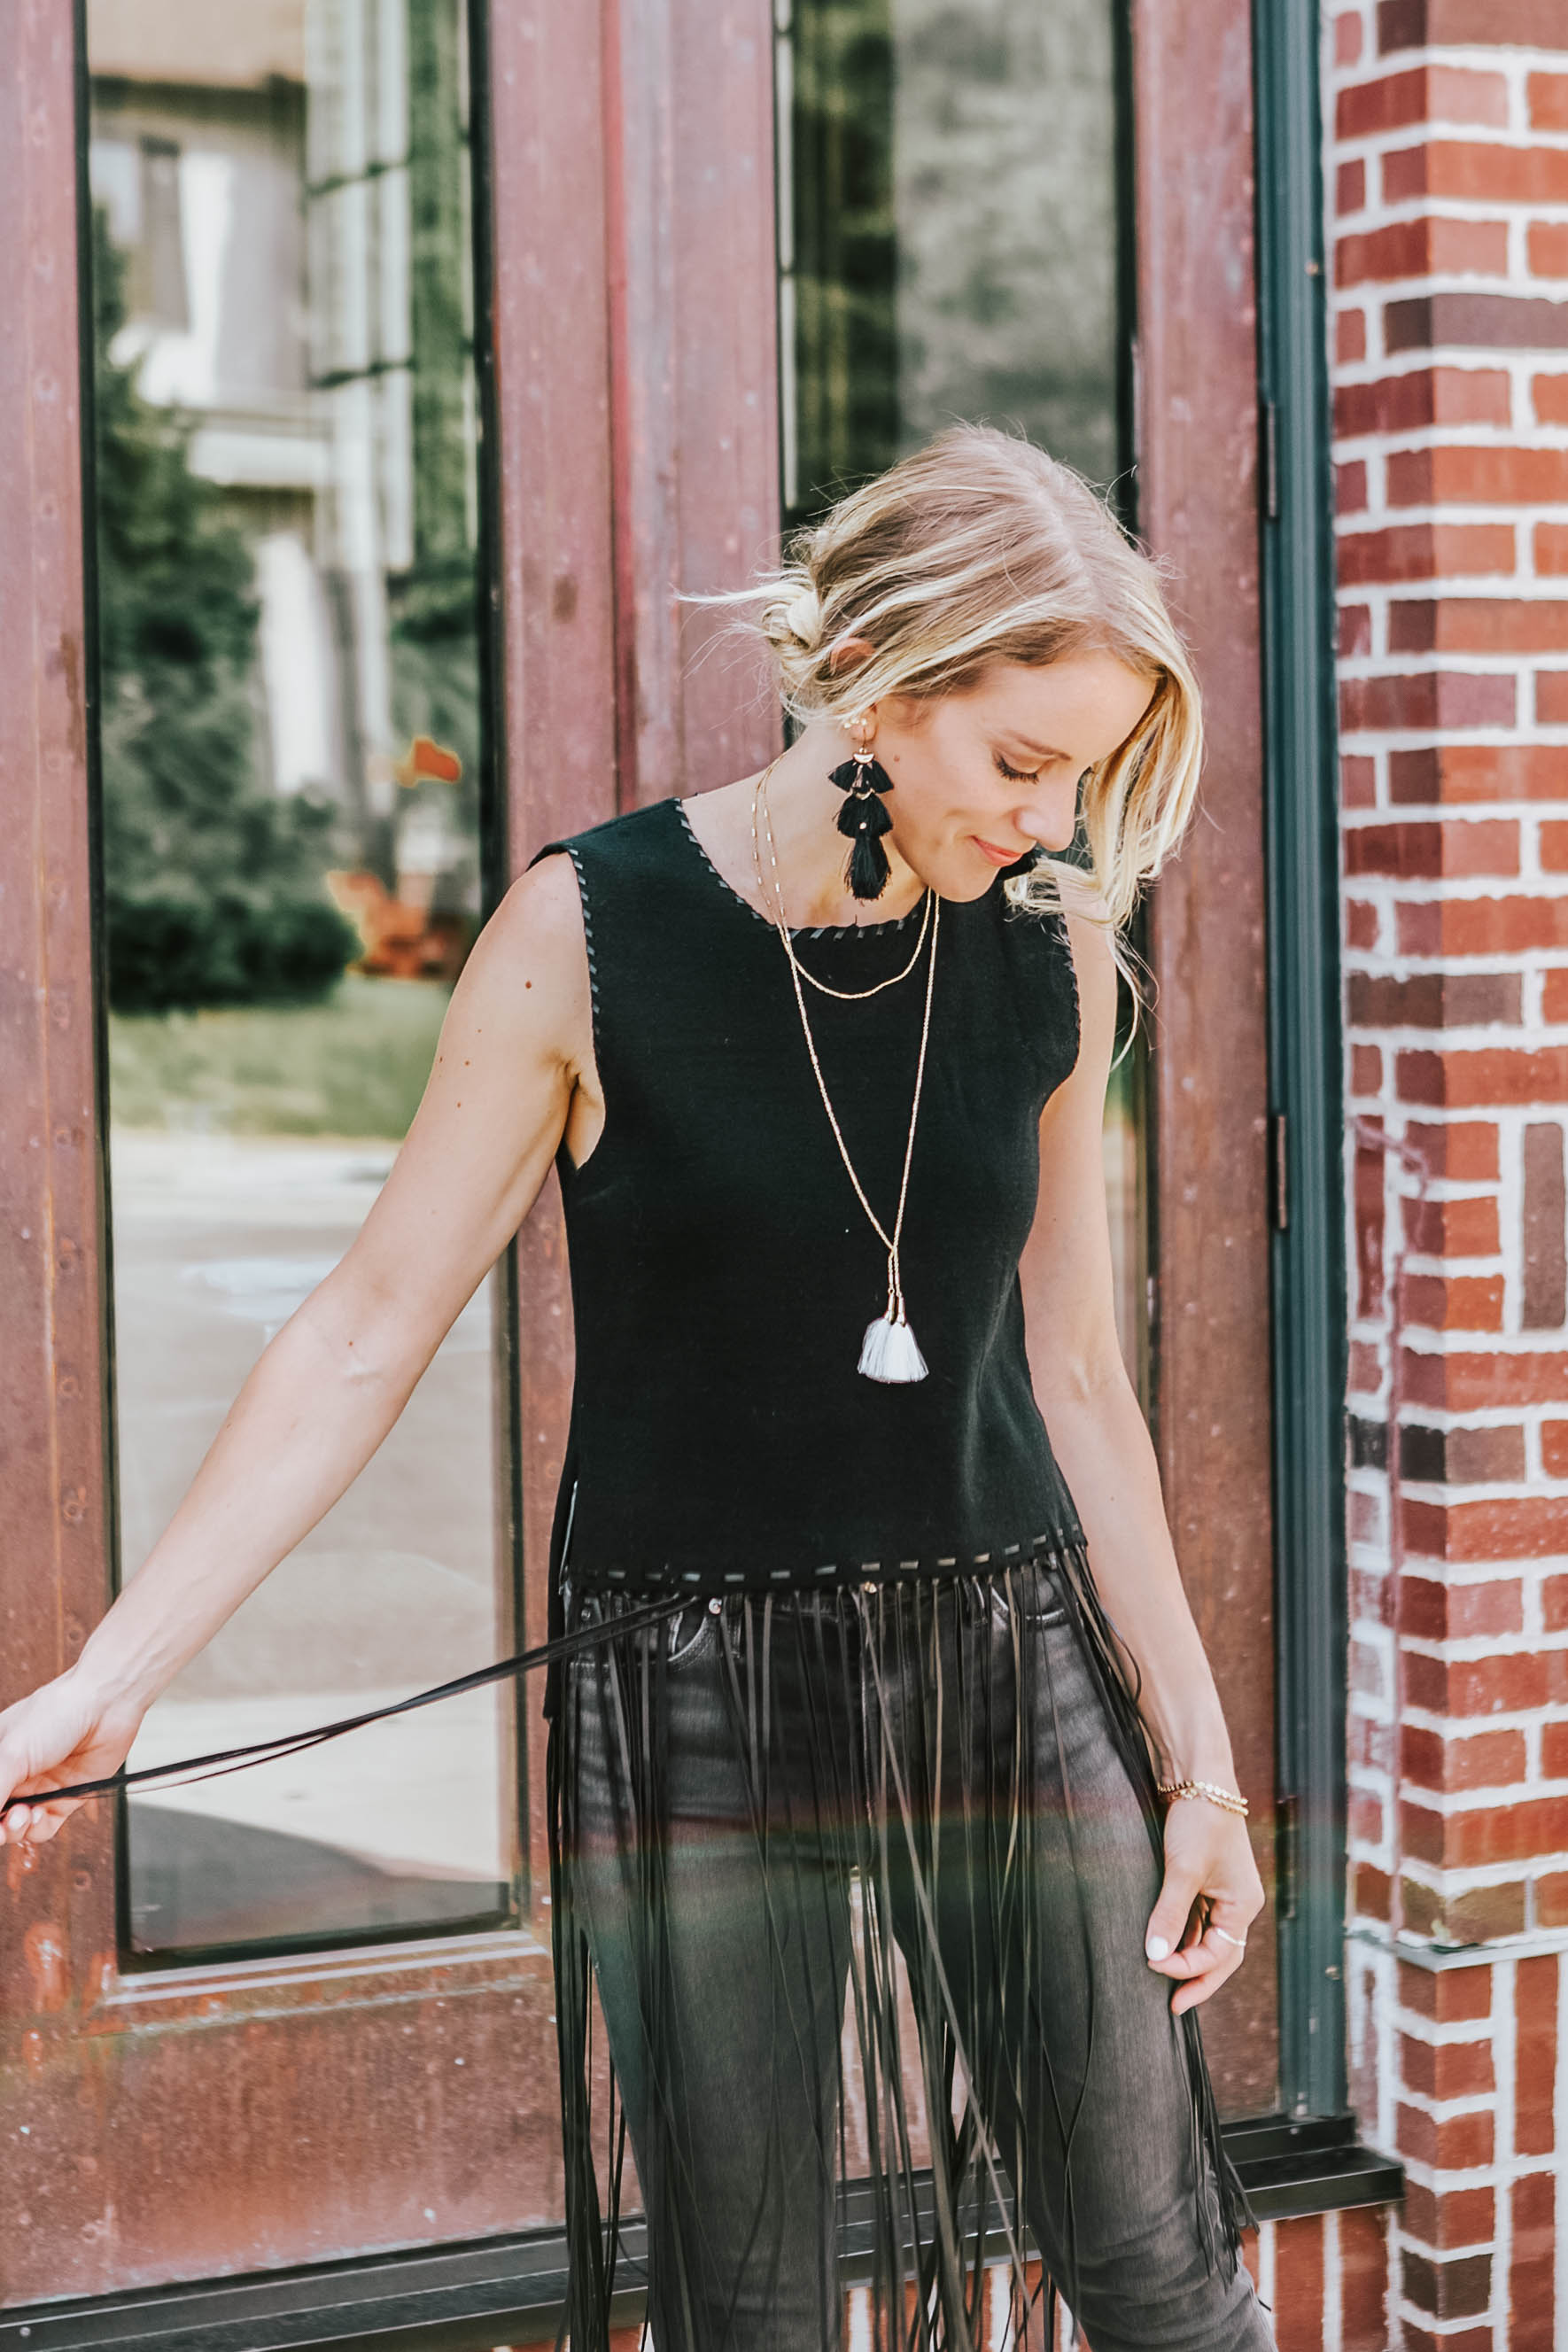 7 questions to find your personal style - black fringe tops with tassel earrings and grey skinny jeans